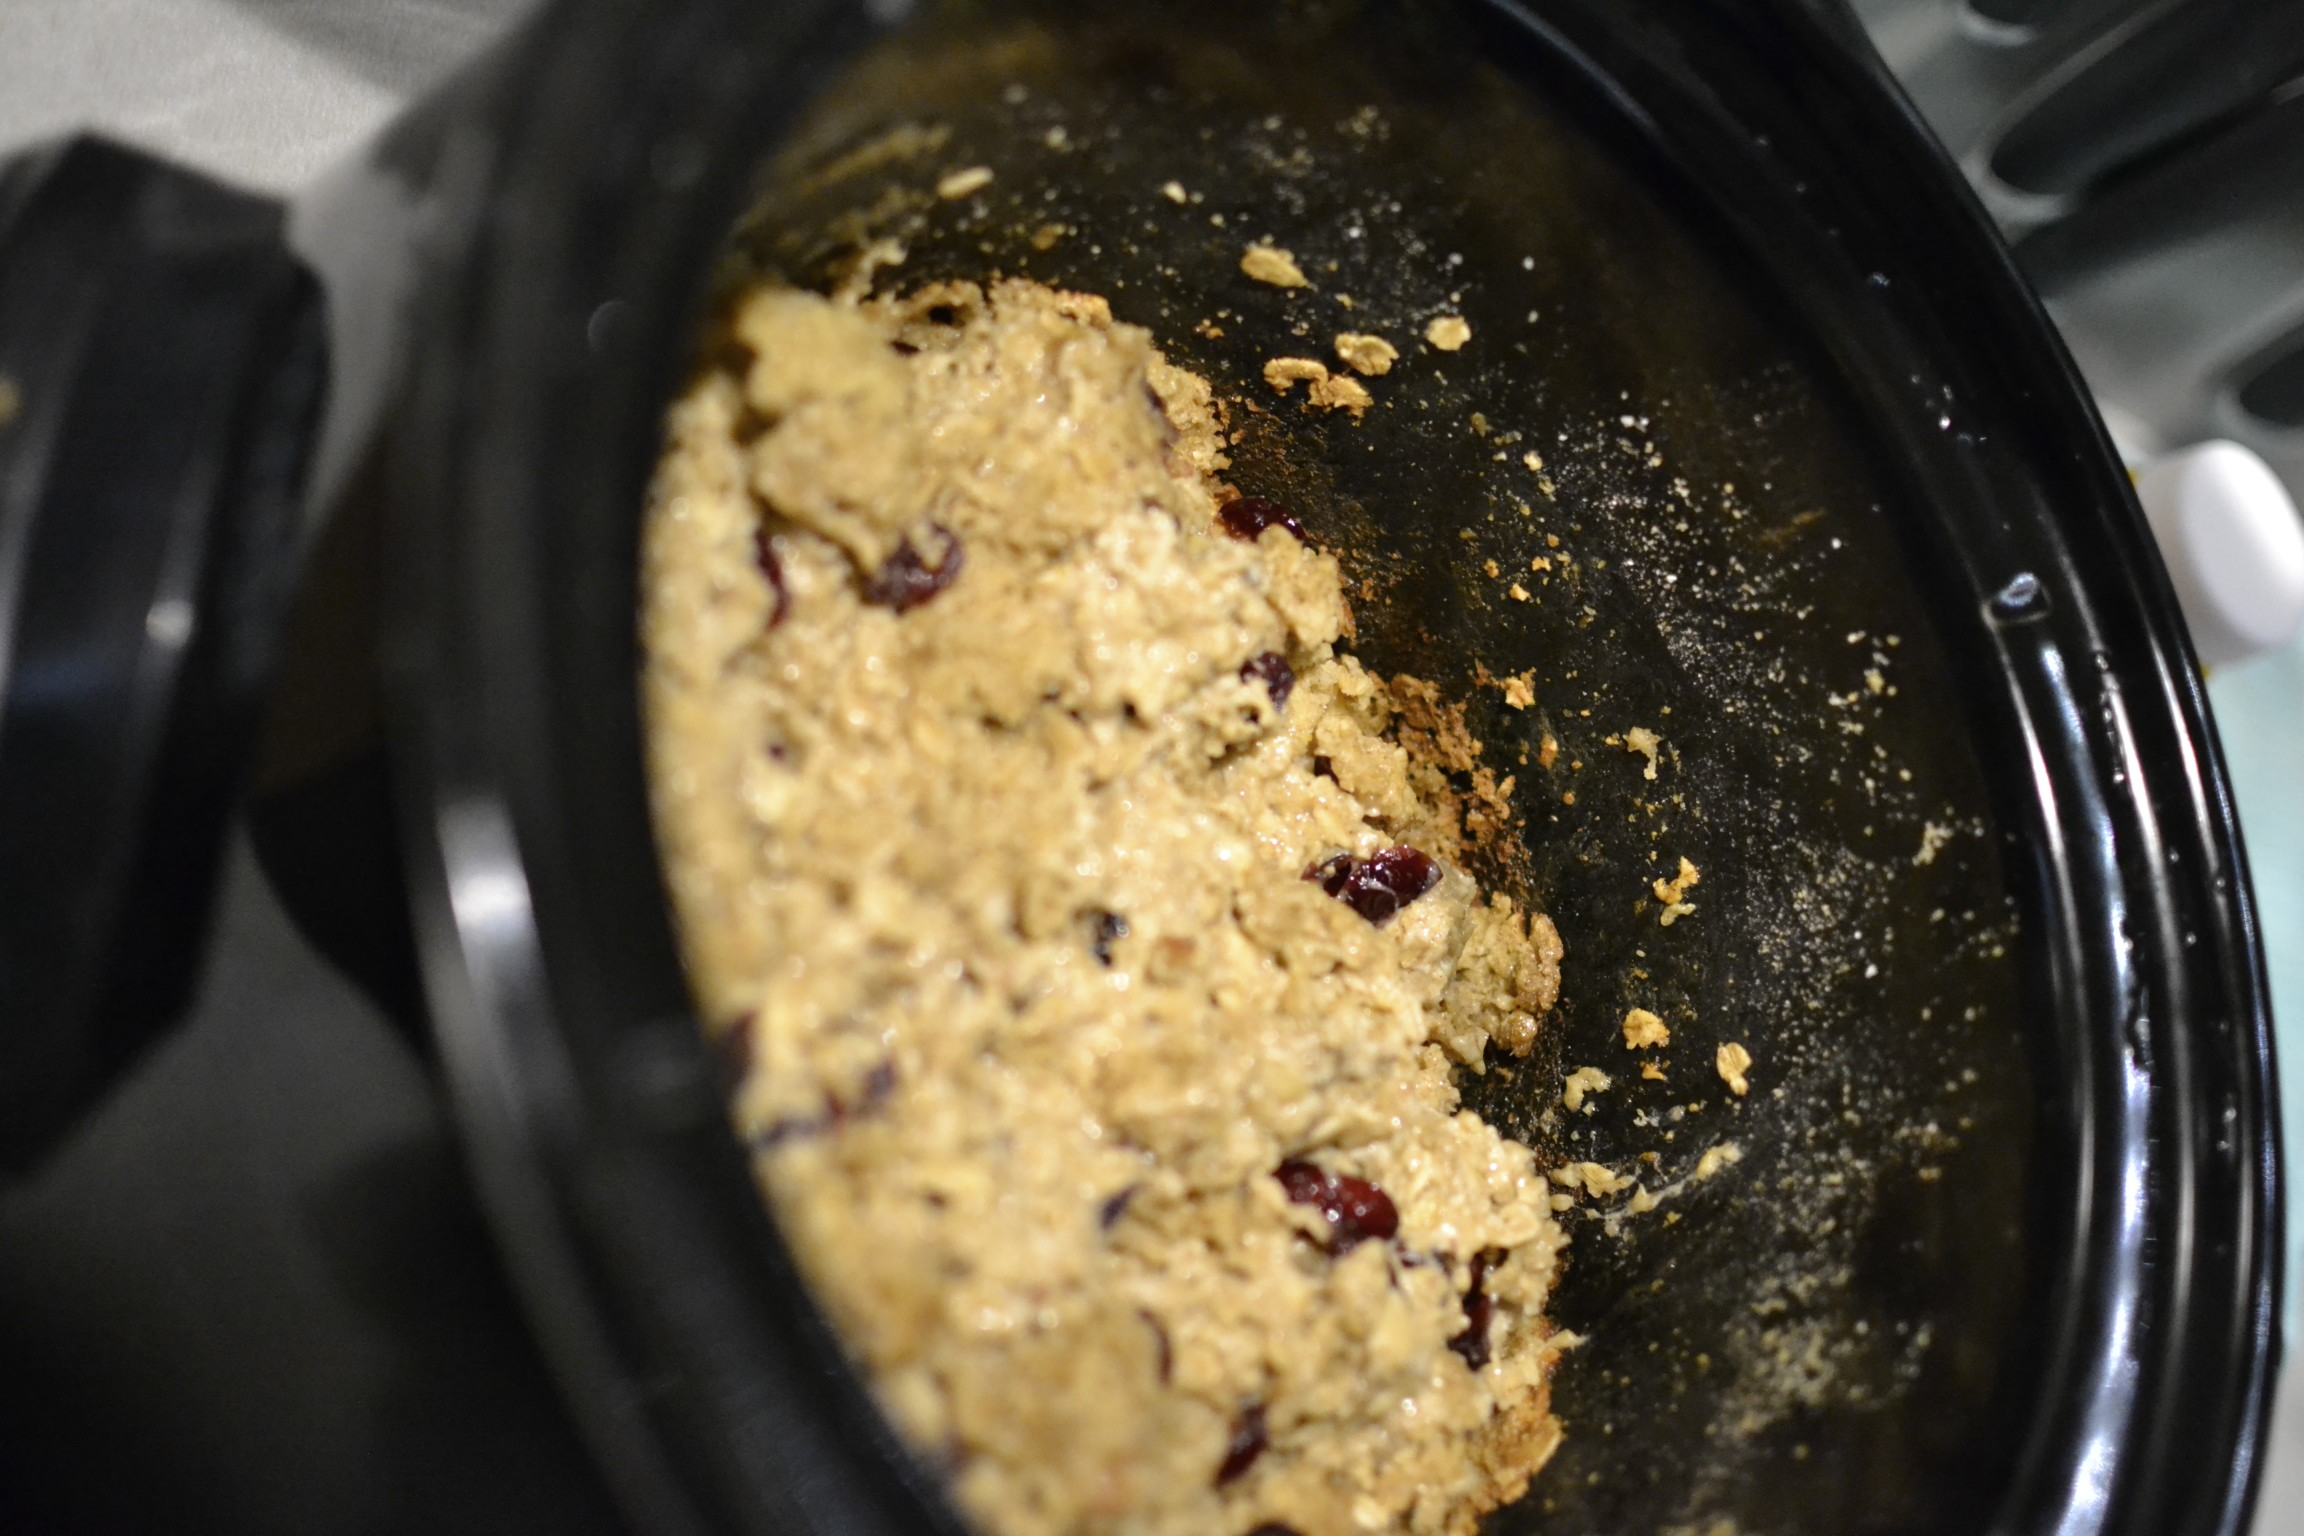 our second attempt at crock pot baked oatmeal. better the second time...i left it in way too long the first time.